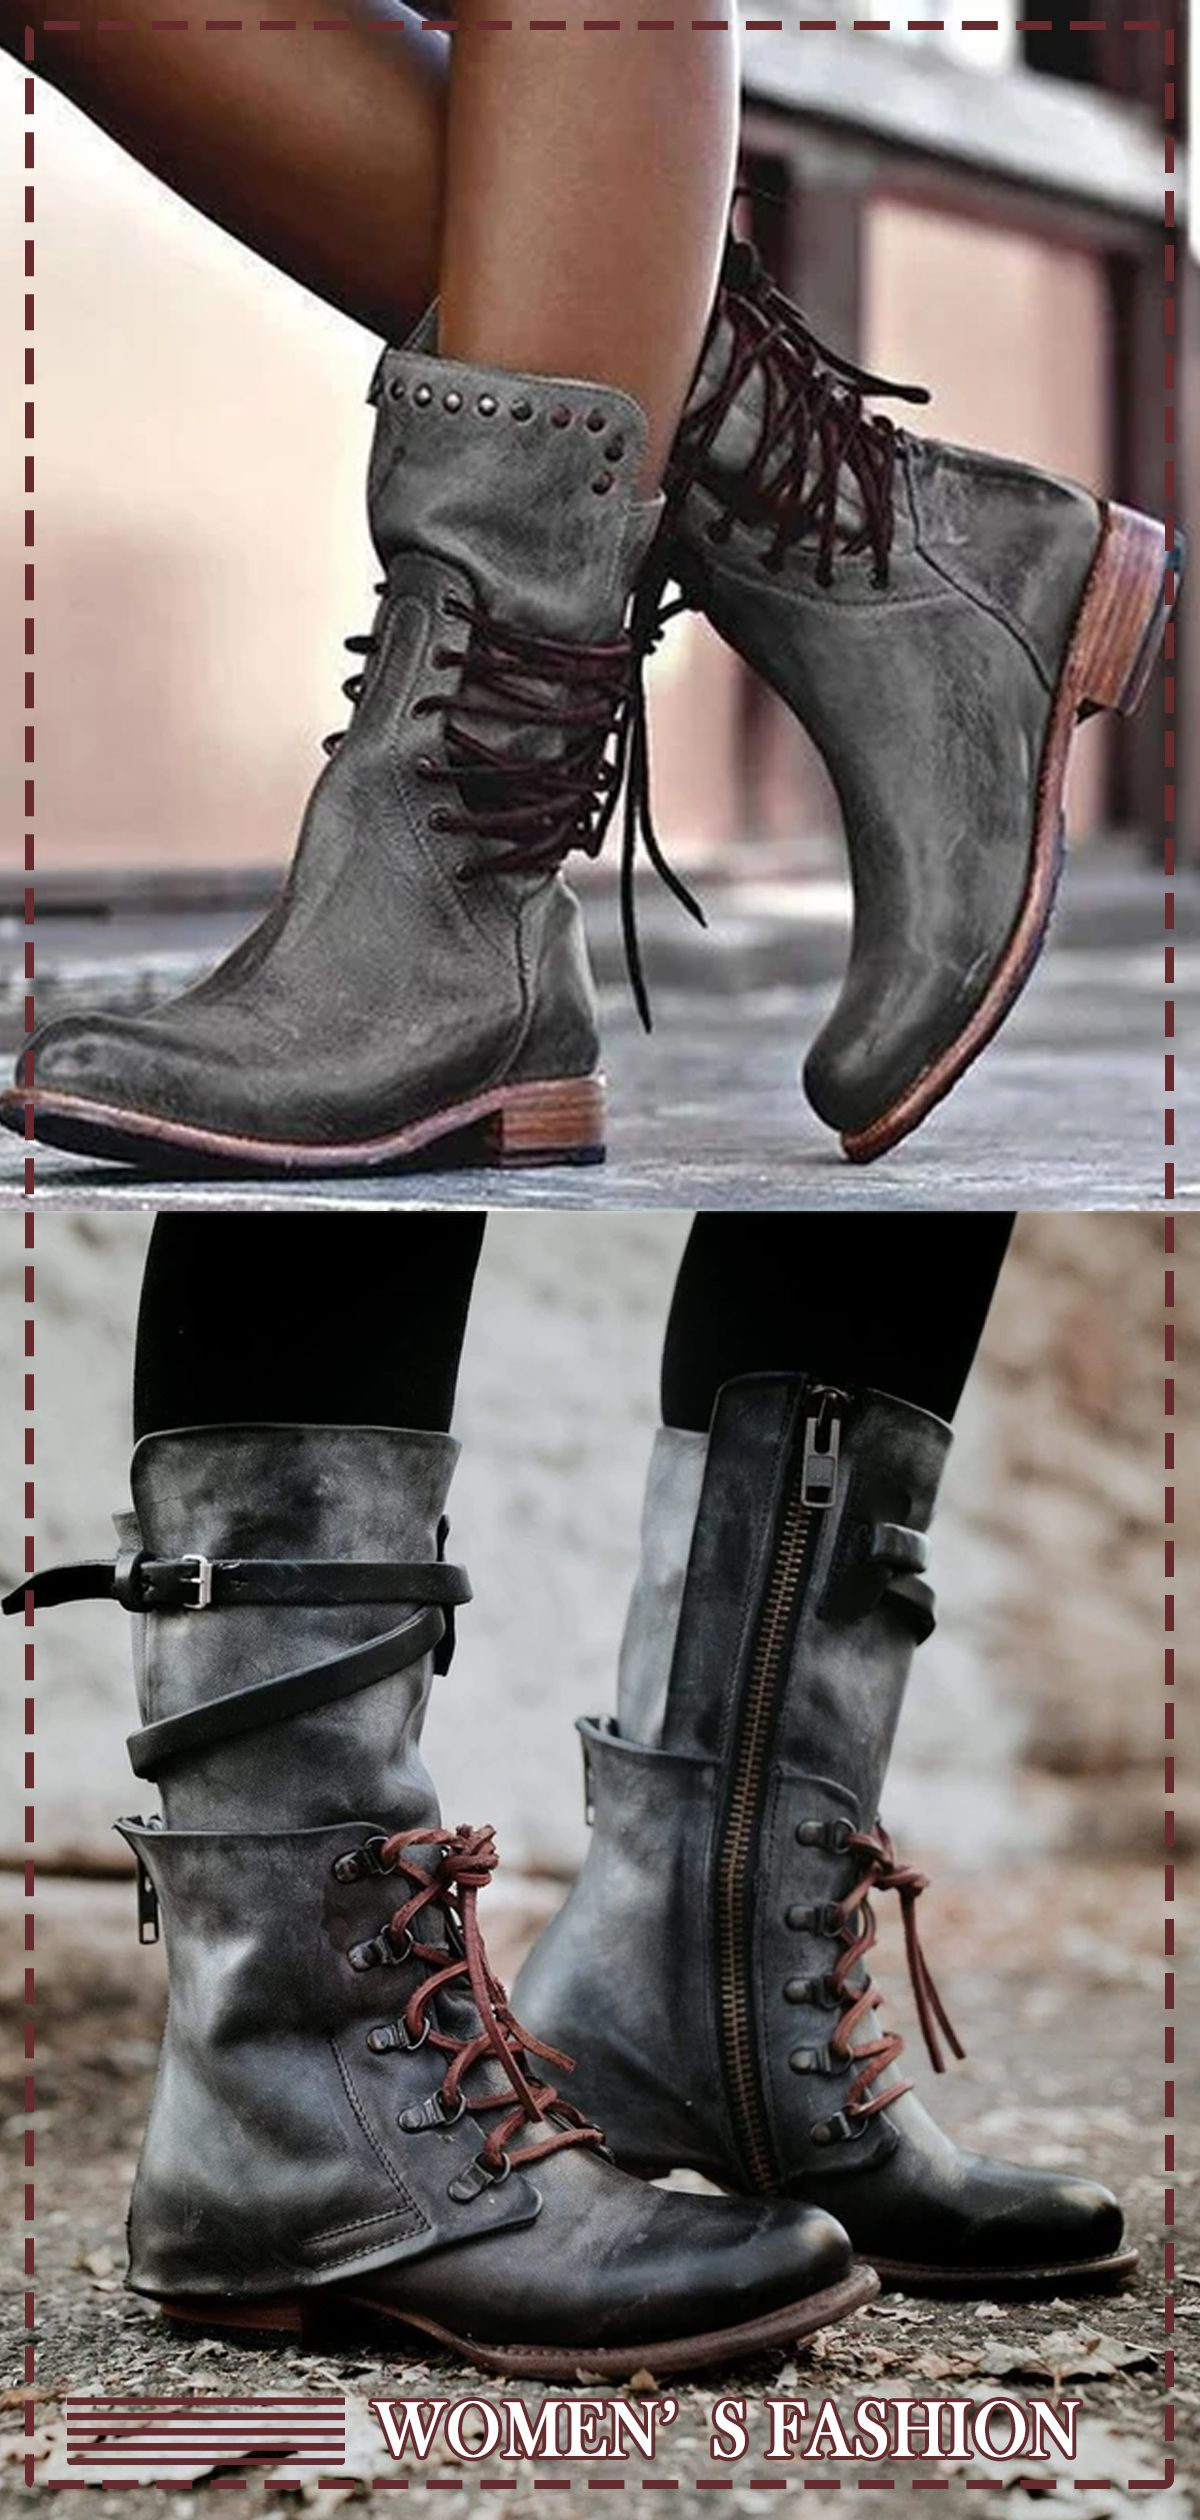 fashion trends, Boots, Faux leather boots